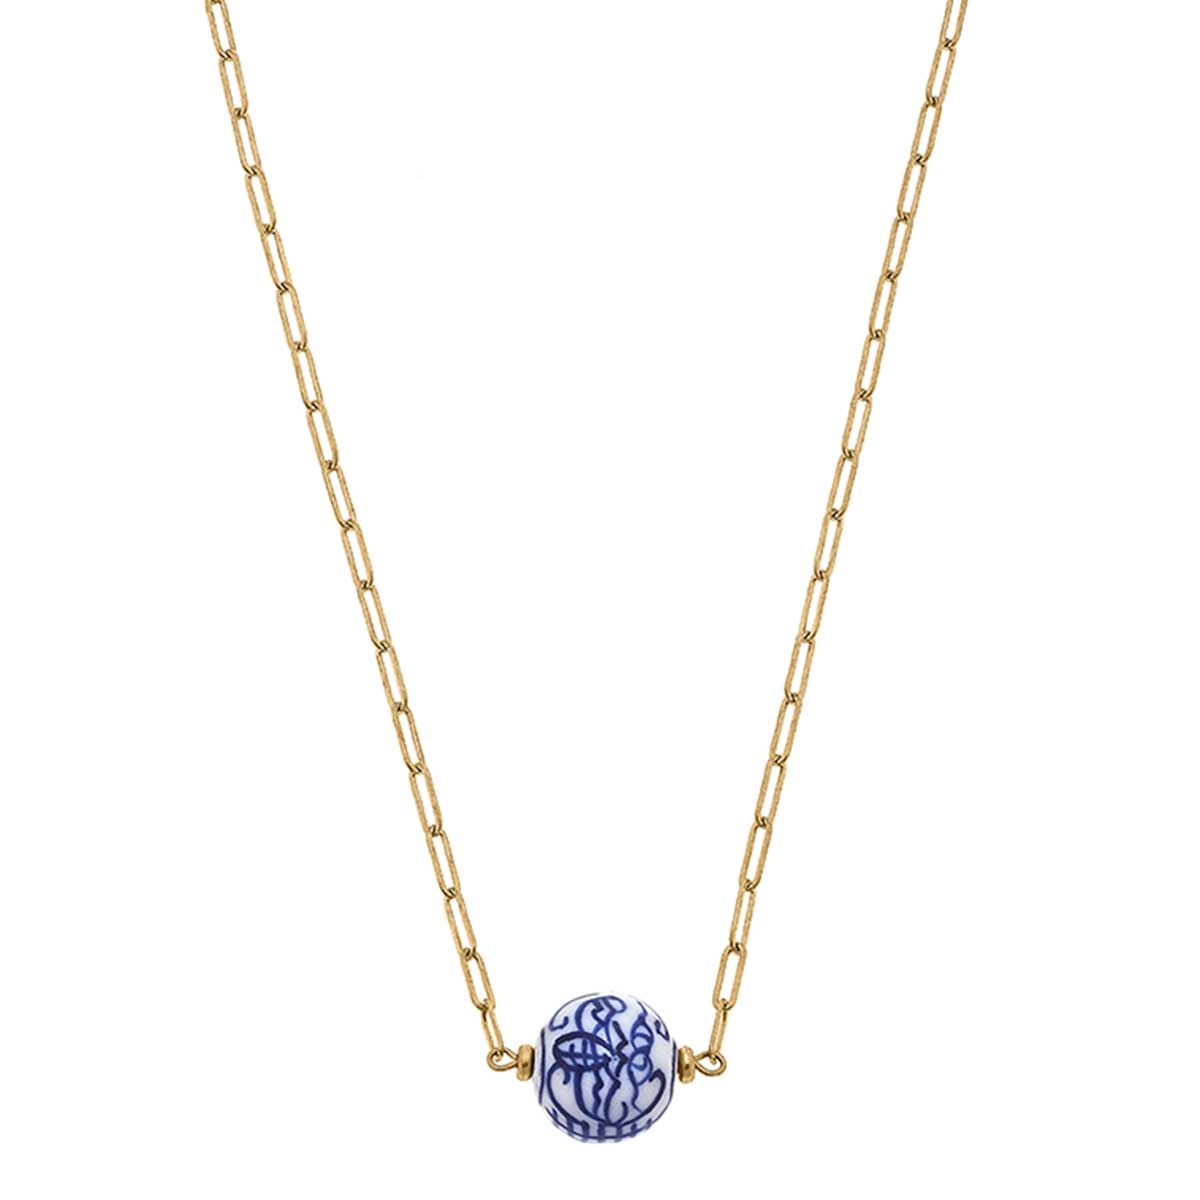 Willow Chinoiserie Necklace in Blue & White